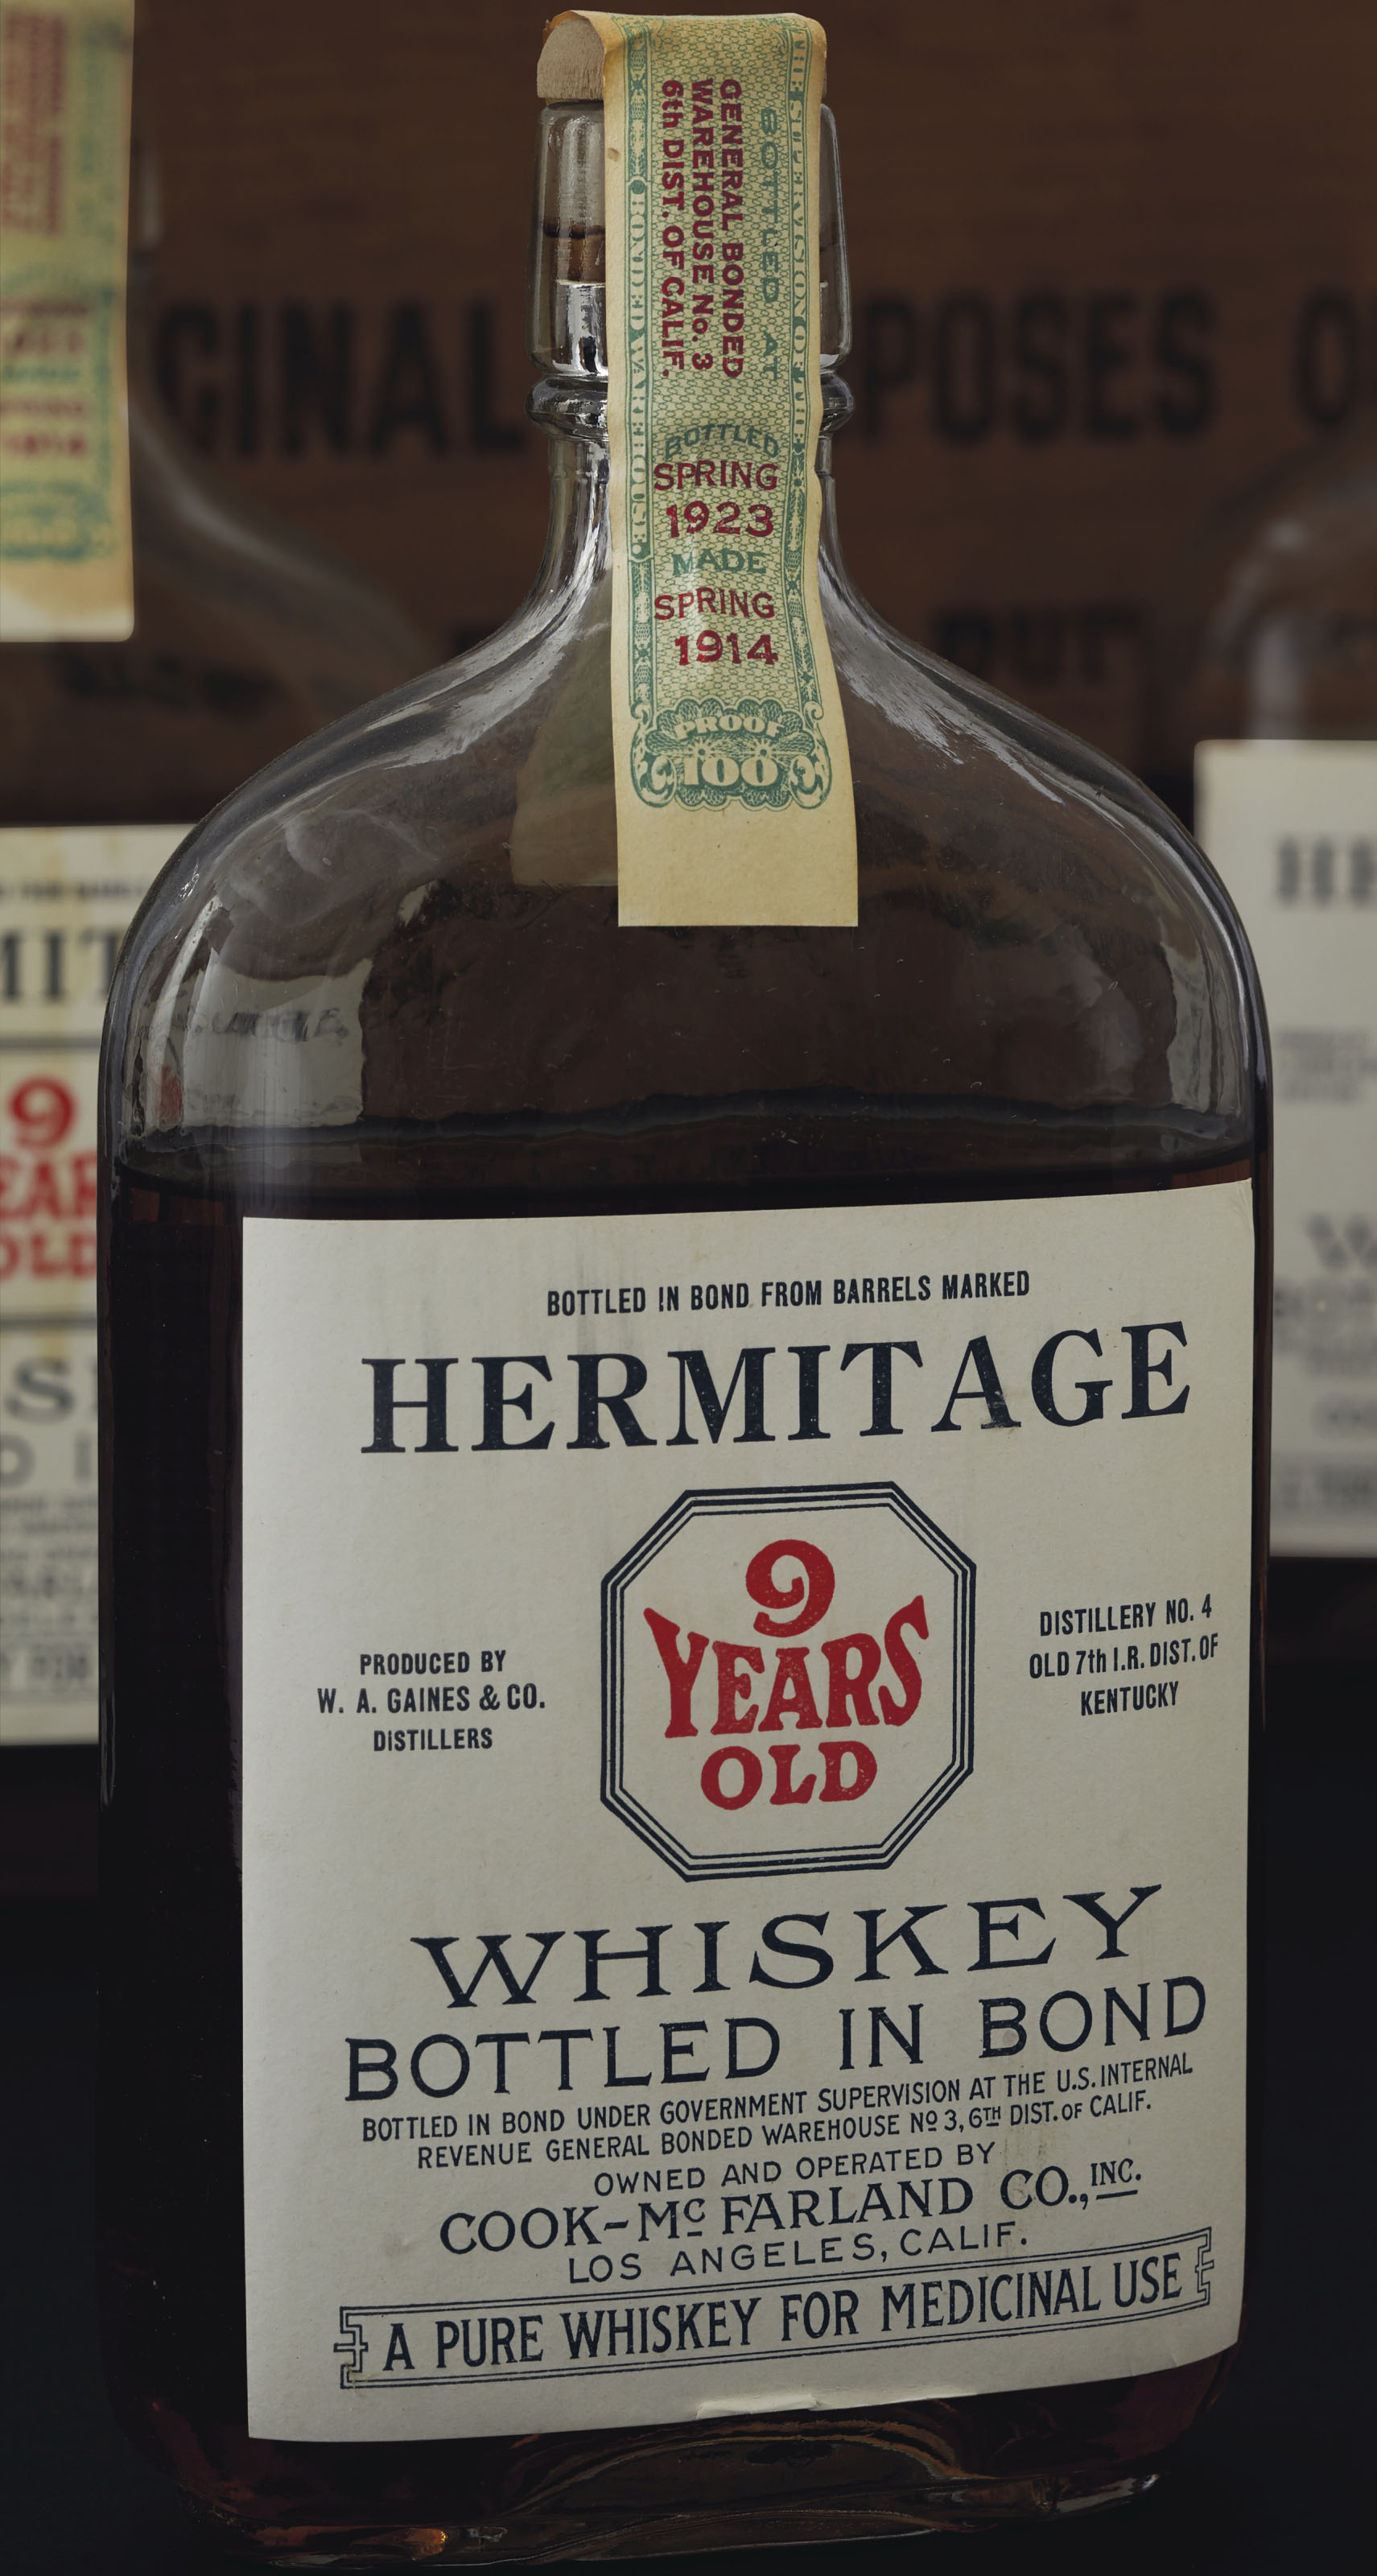 Hermitage Whiskey Bottled in Bond 9 Years Old 1914 | 24